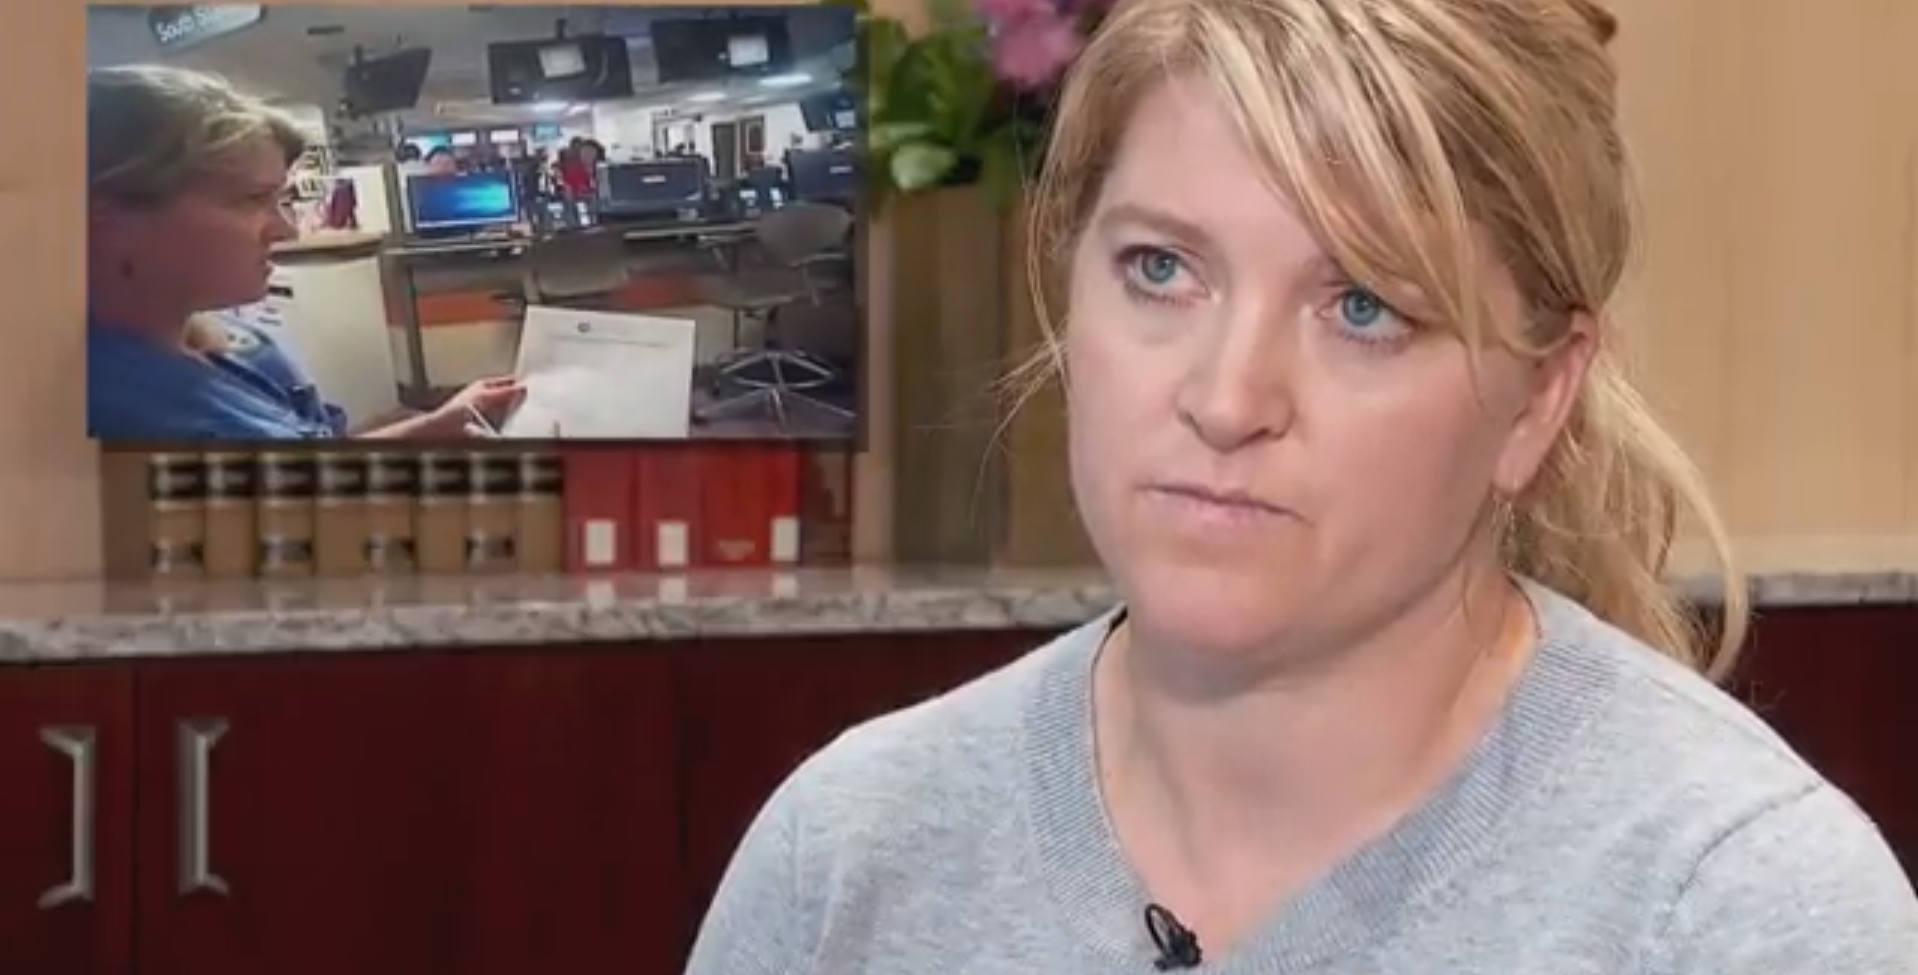 Exclusive interview with U of U nurse in response to arrest video (Photo: KUTV)